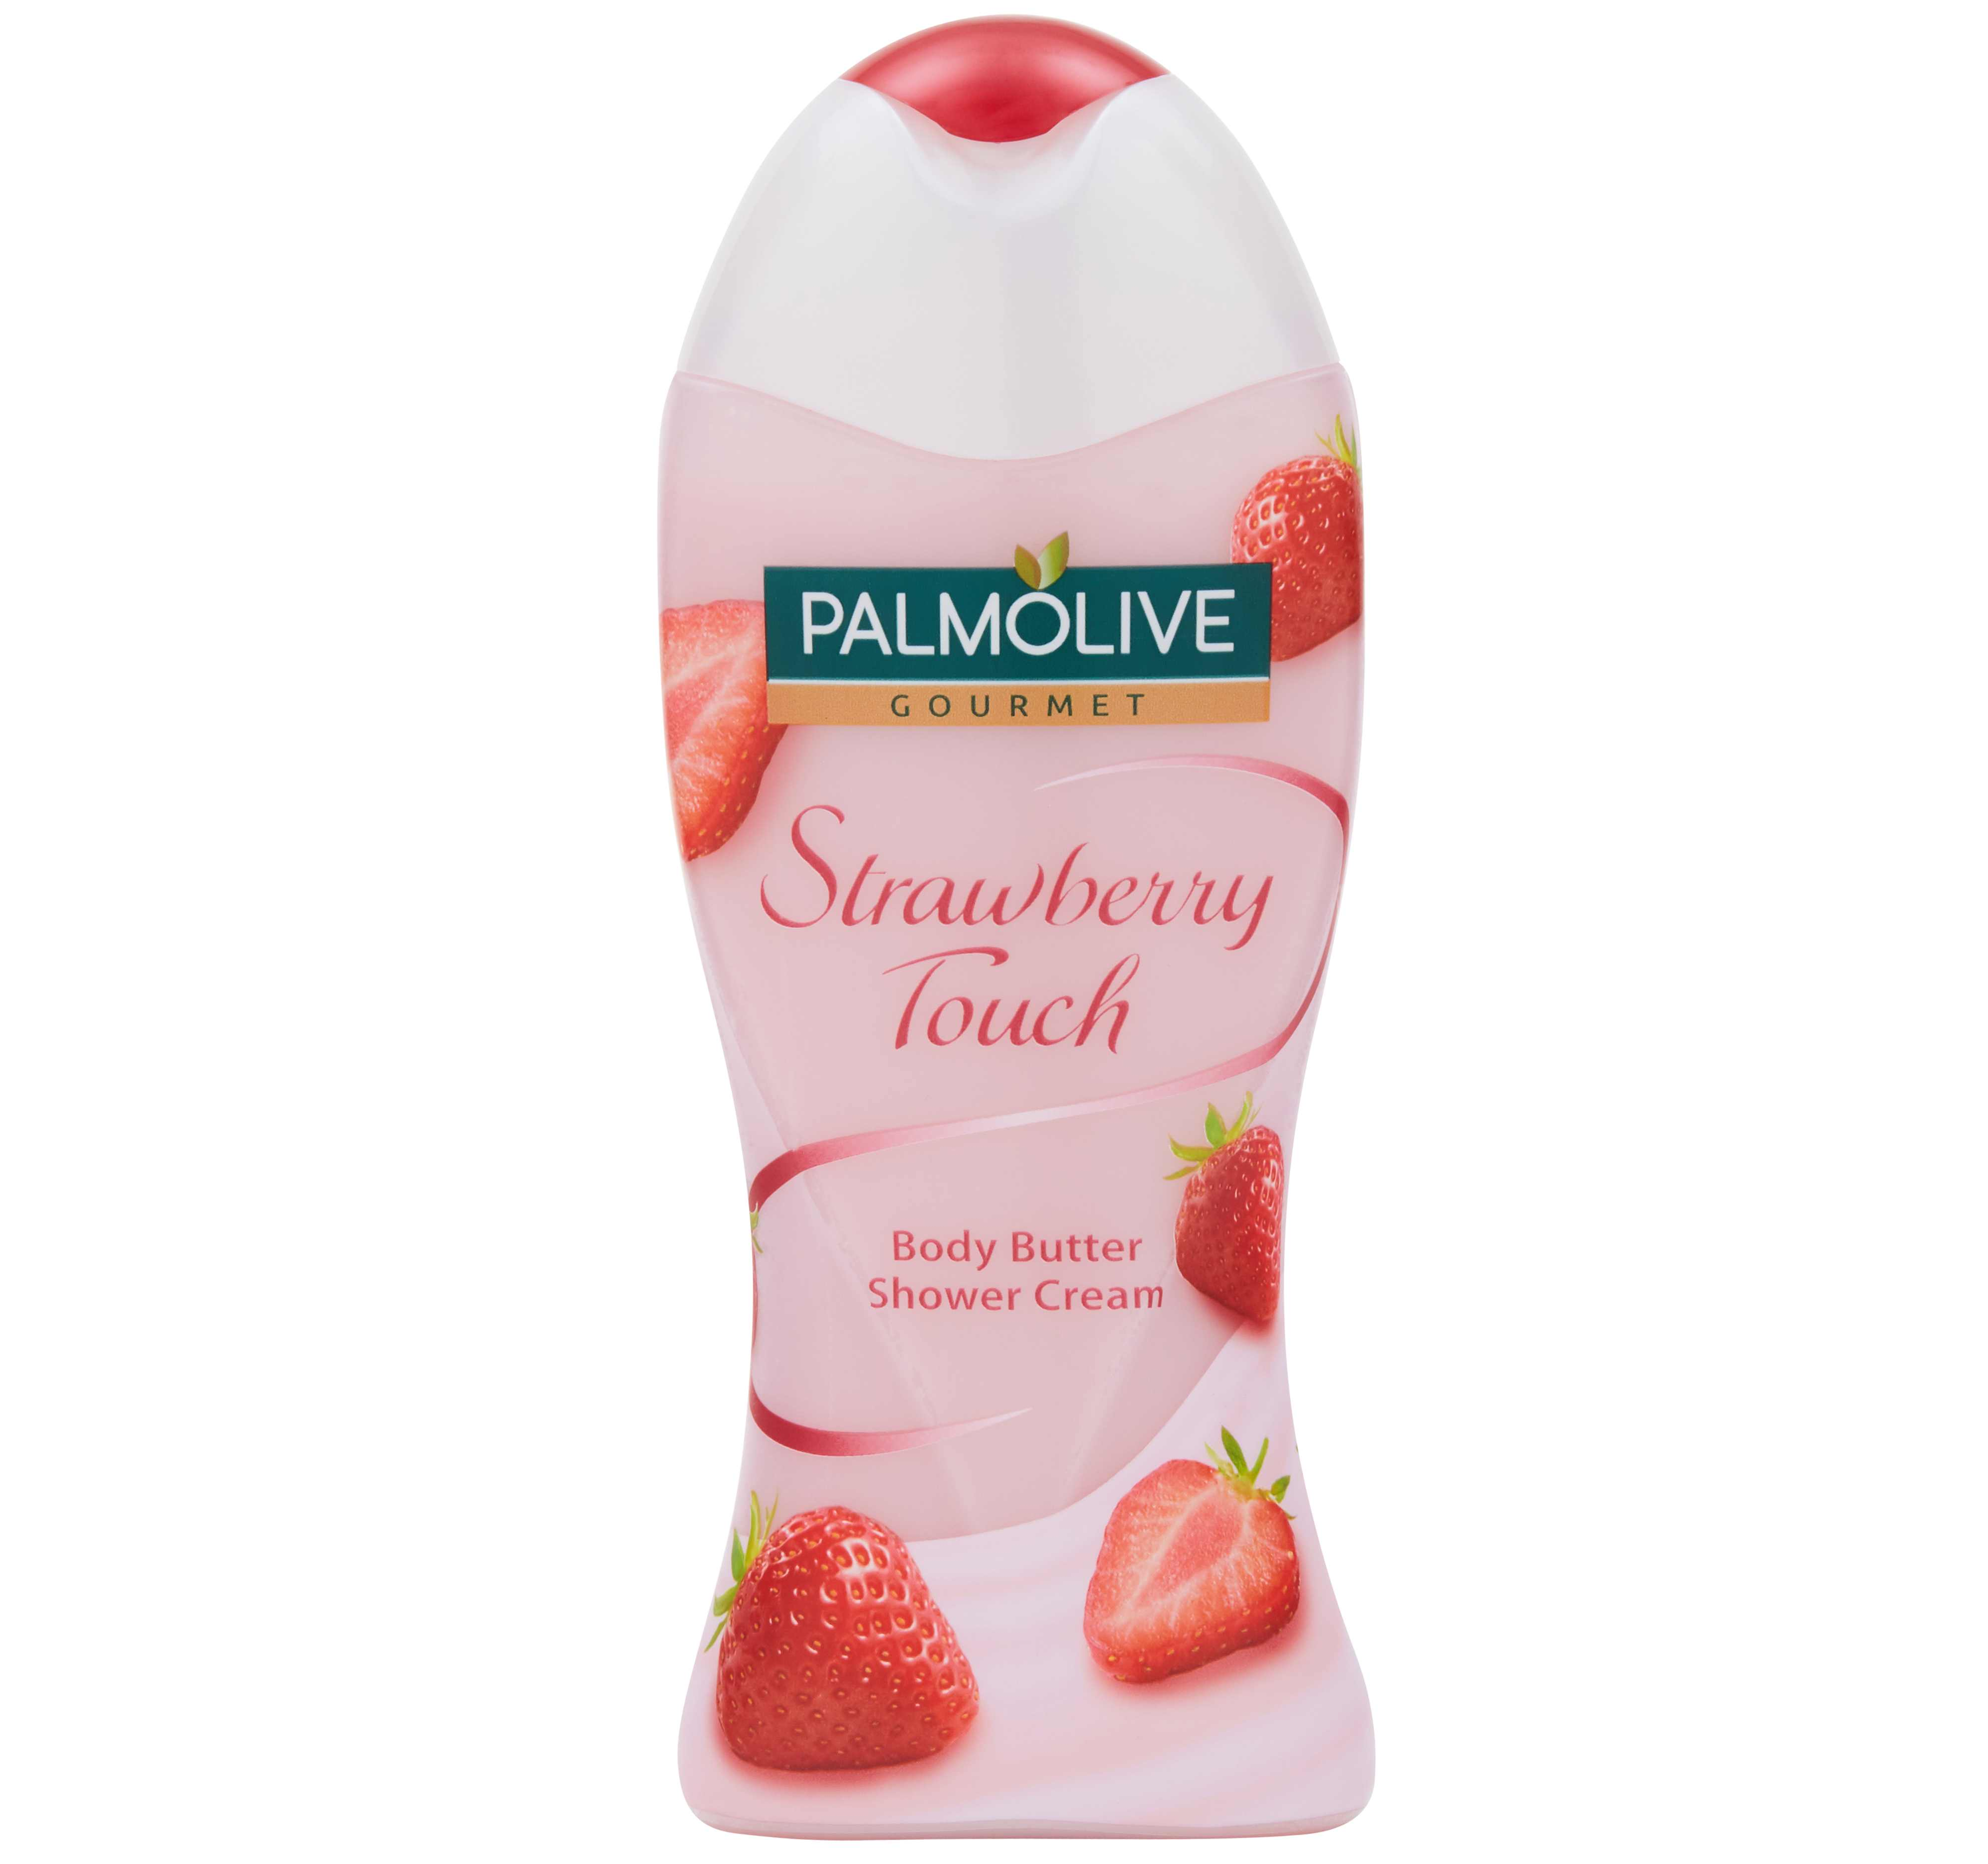 Palmolive Gourmet Strawberry Touch Body Butter Shower Cream